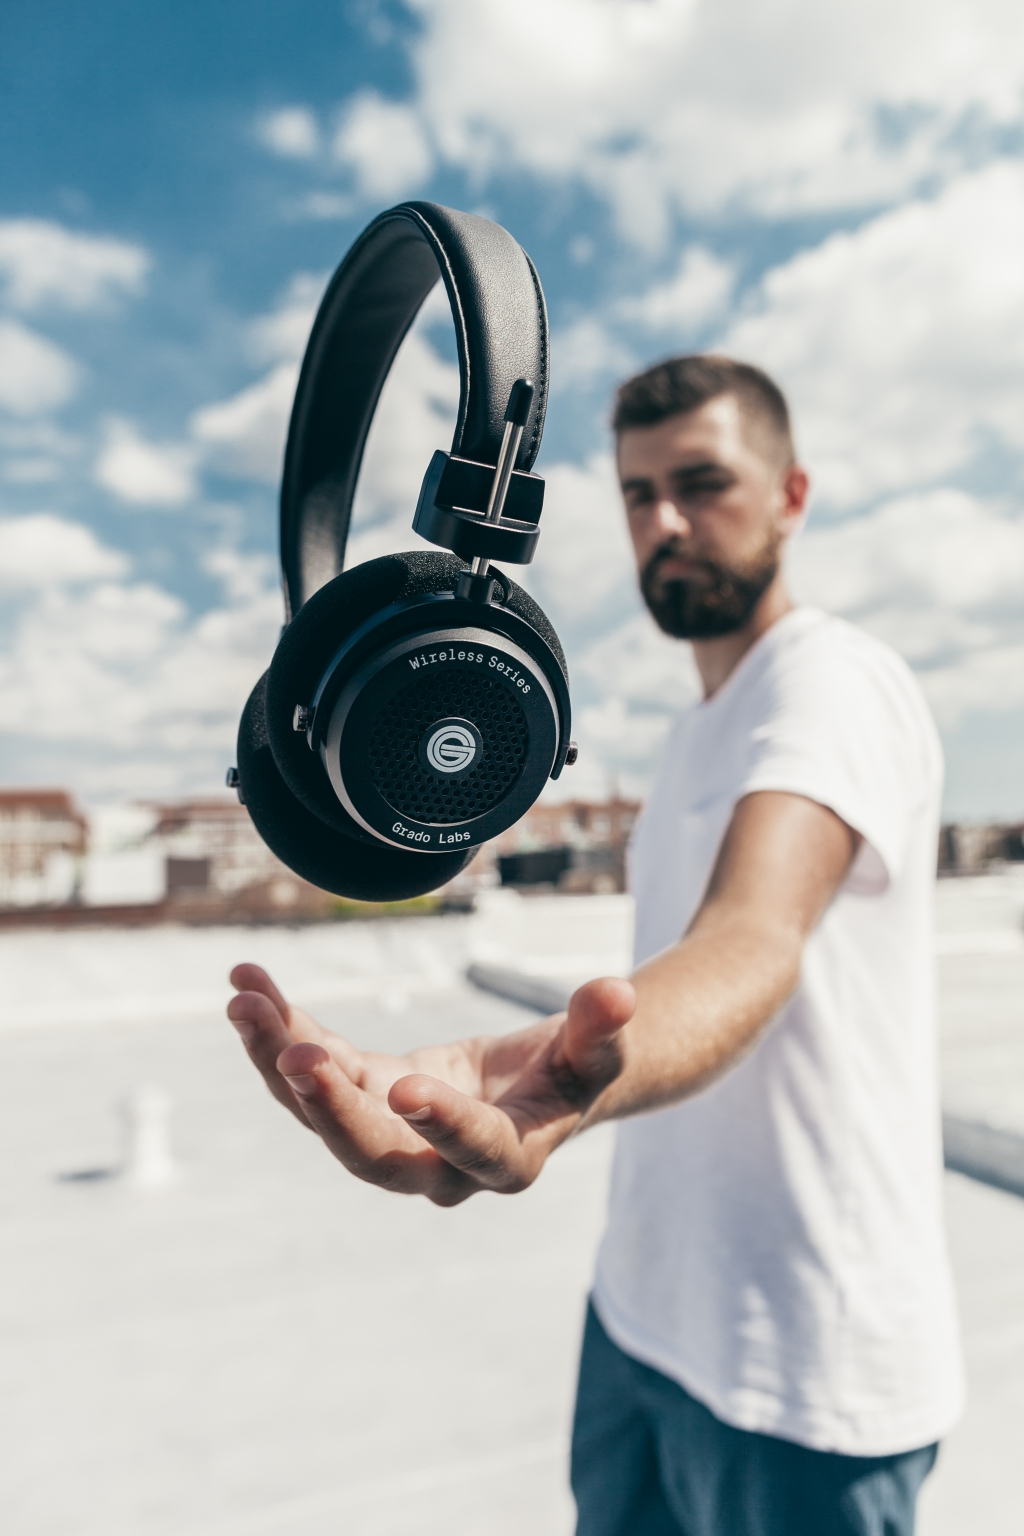 grado, grado labs, grado headphones, sunset park, brooklyn, brooklyn headphone company, three generations of sound, GW100, wireless, bluetooth, brooklyn, rooftop, sky, clouds